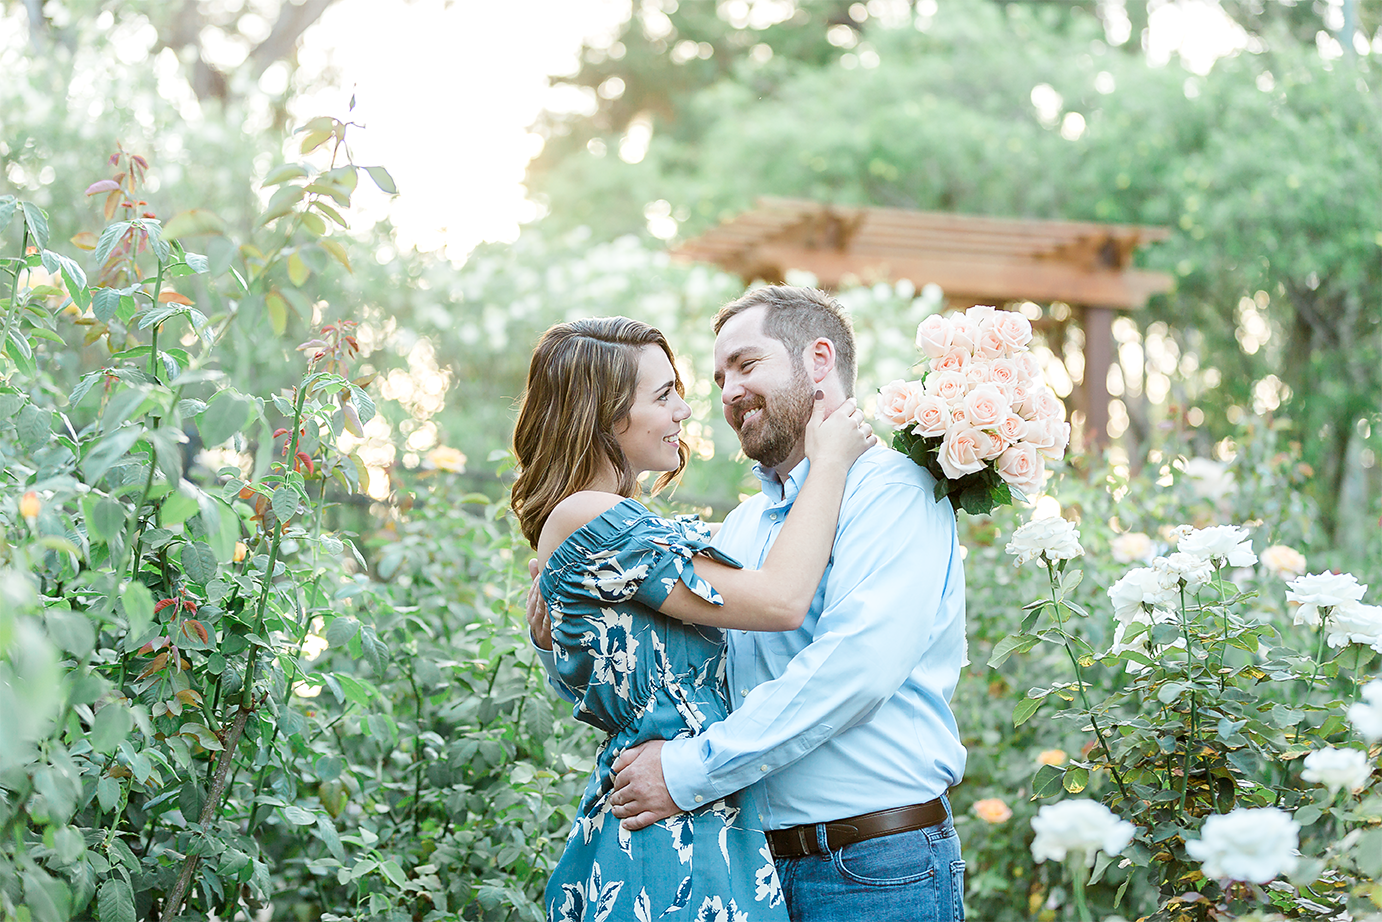 sunset engagement photos in washington oaks gardens